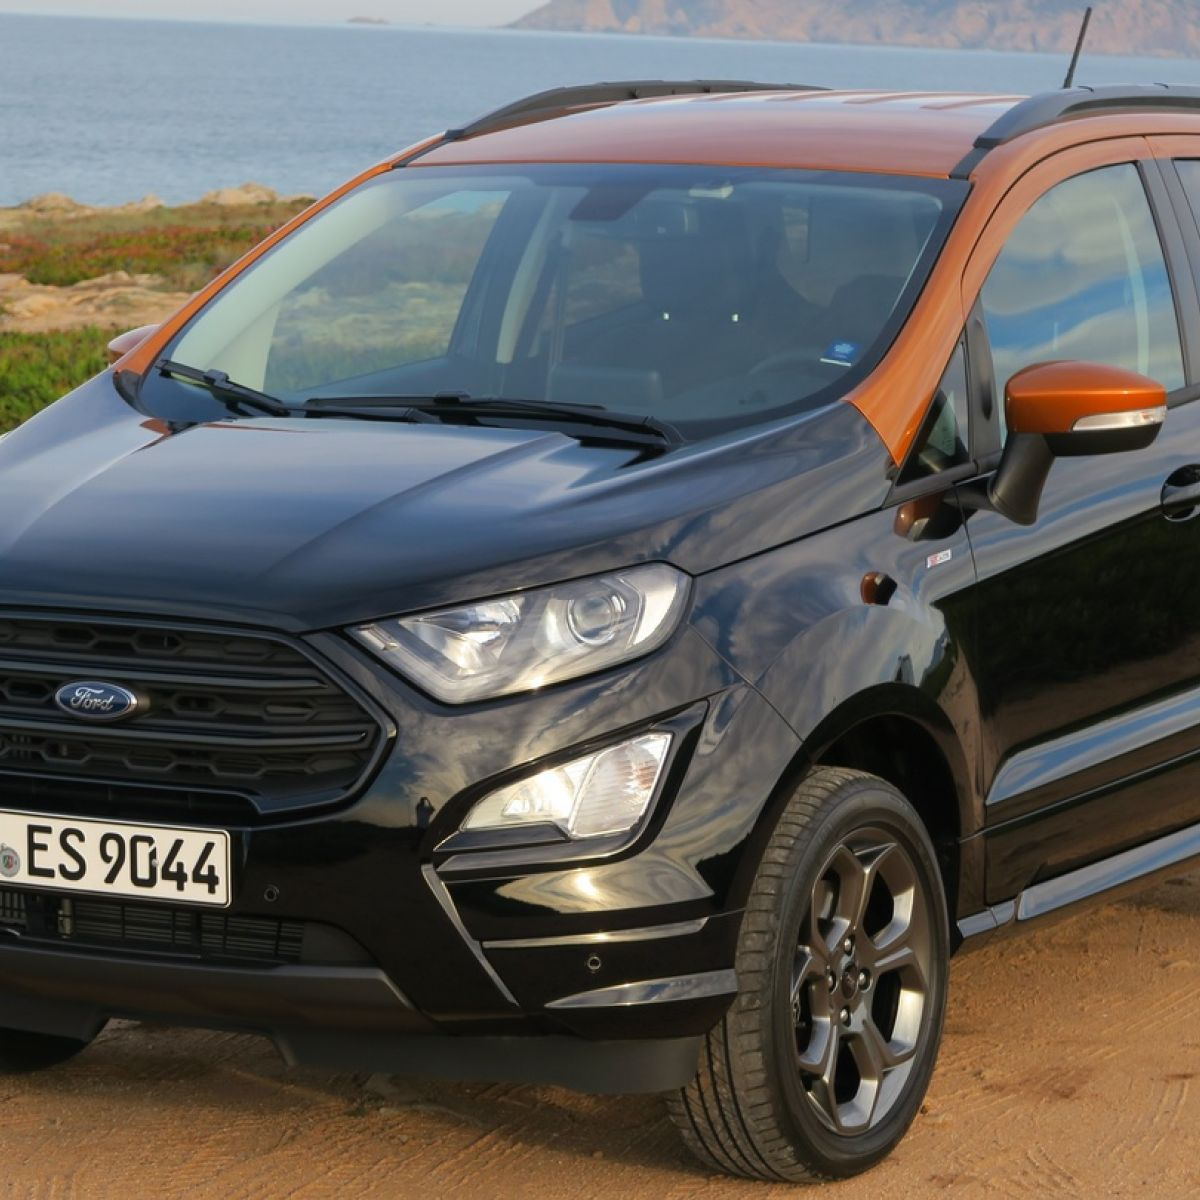 59cdcfa4c1 New Ford Ecosport simply can t keep pace with rivals